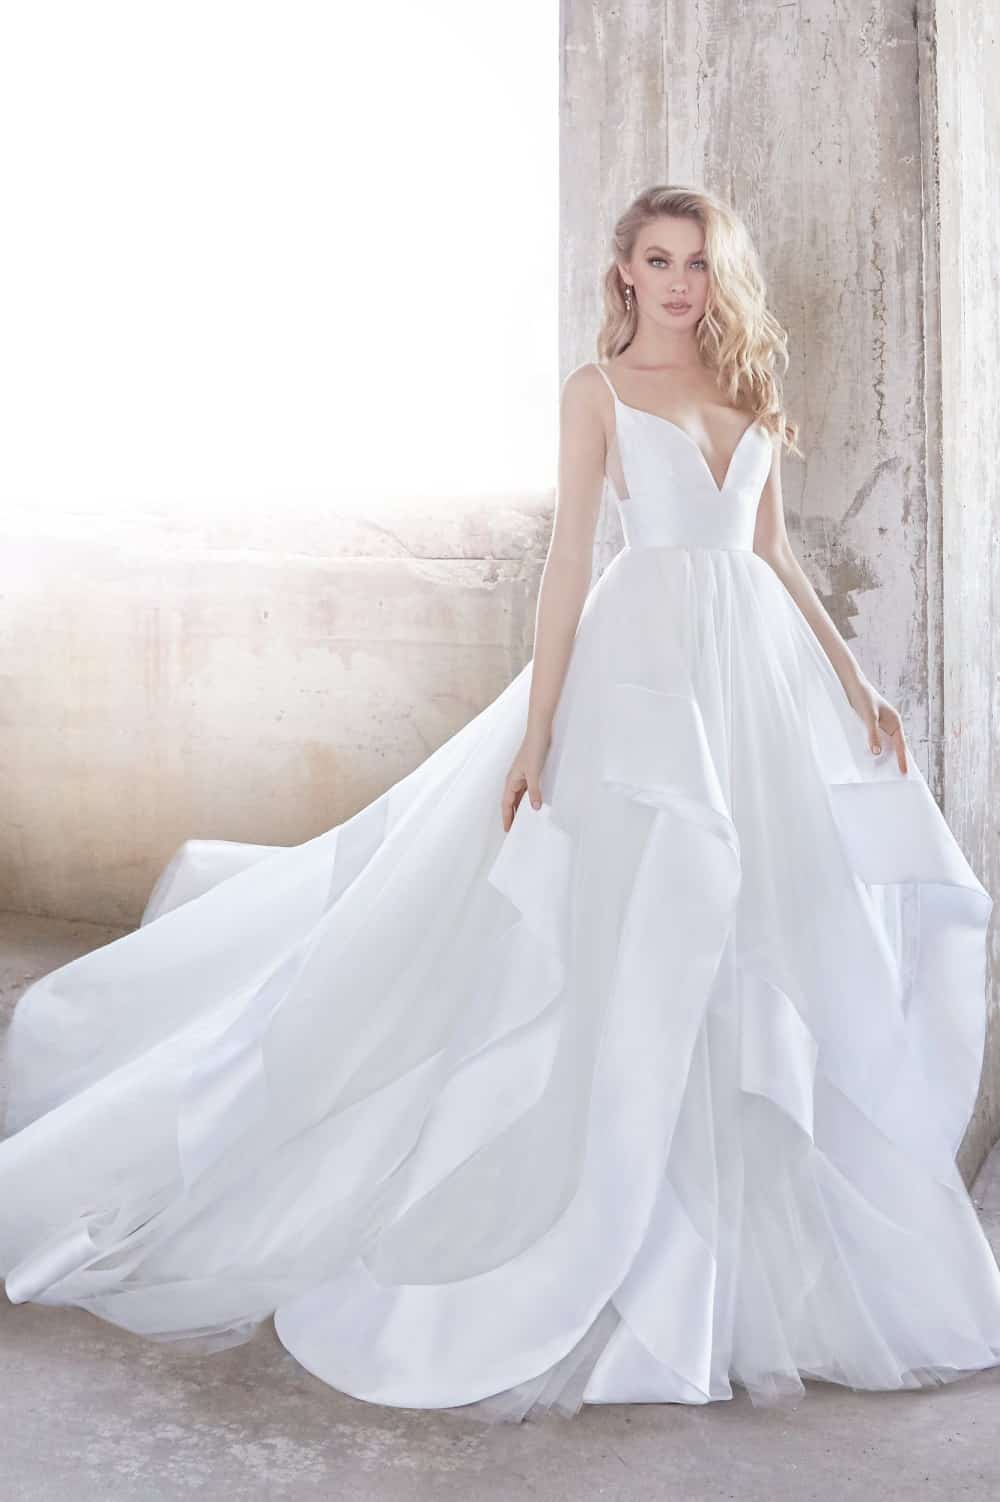 Model the Newest Wedding Dress